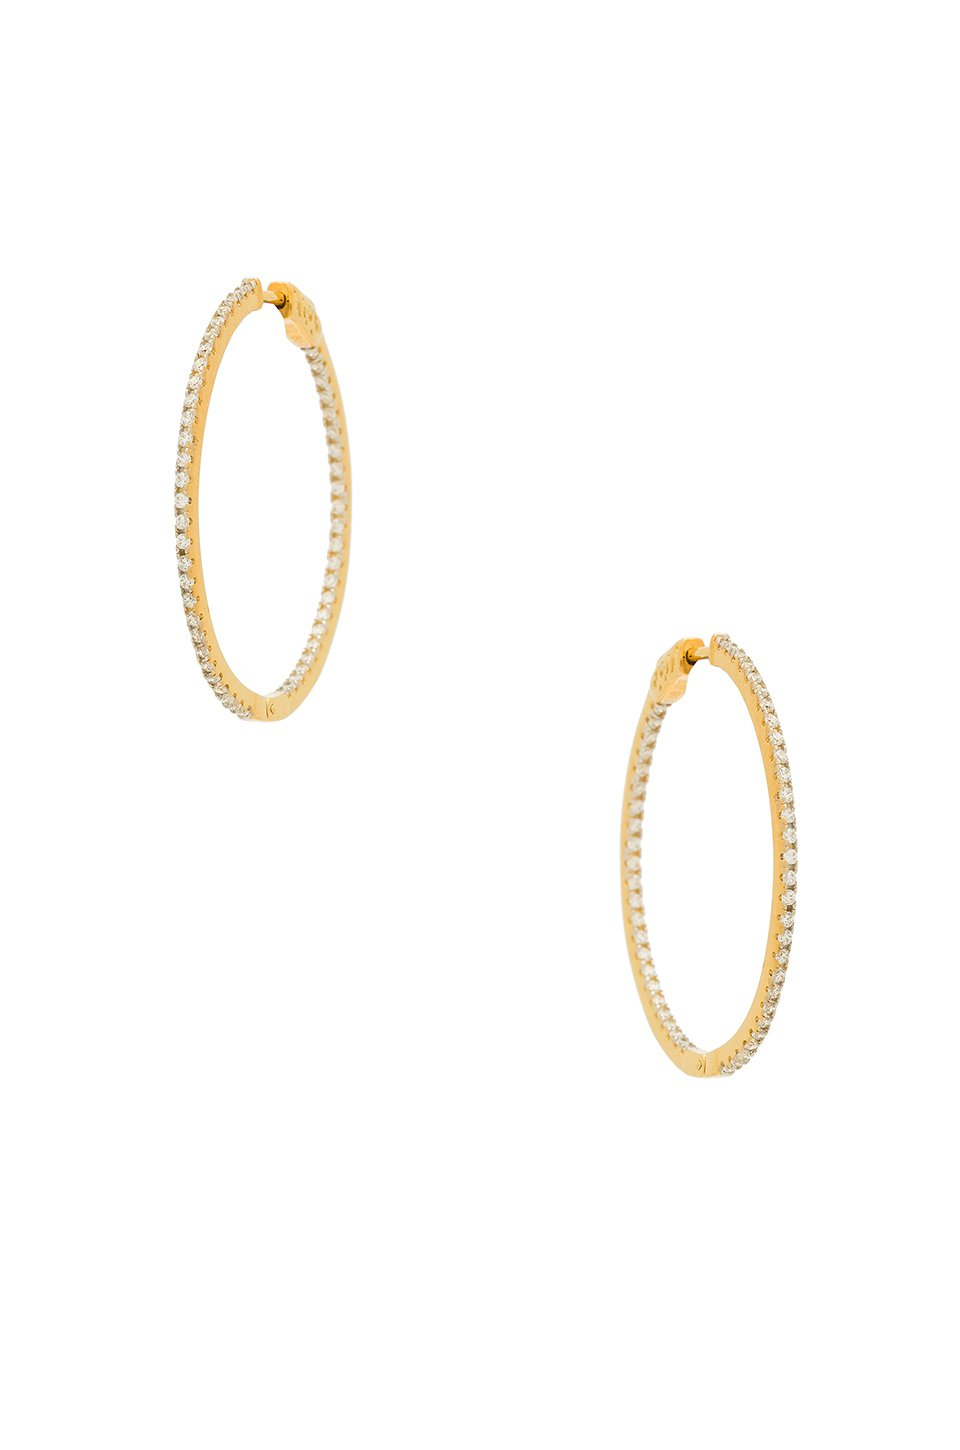 The Thin Pave Hoops